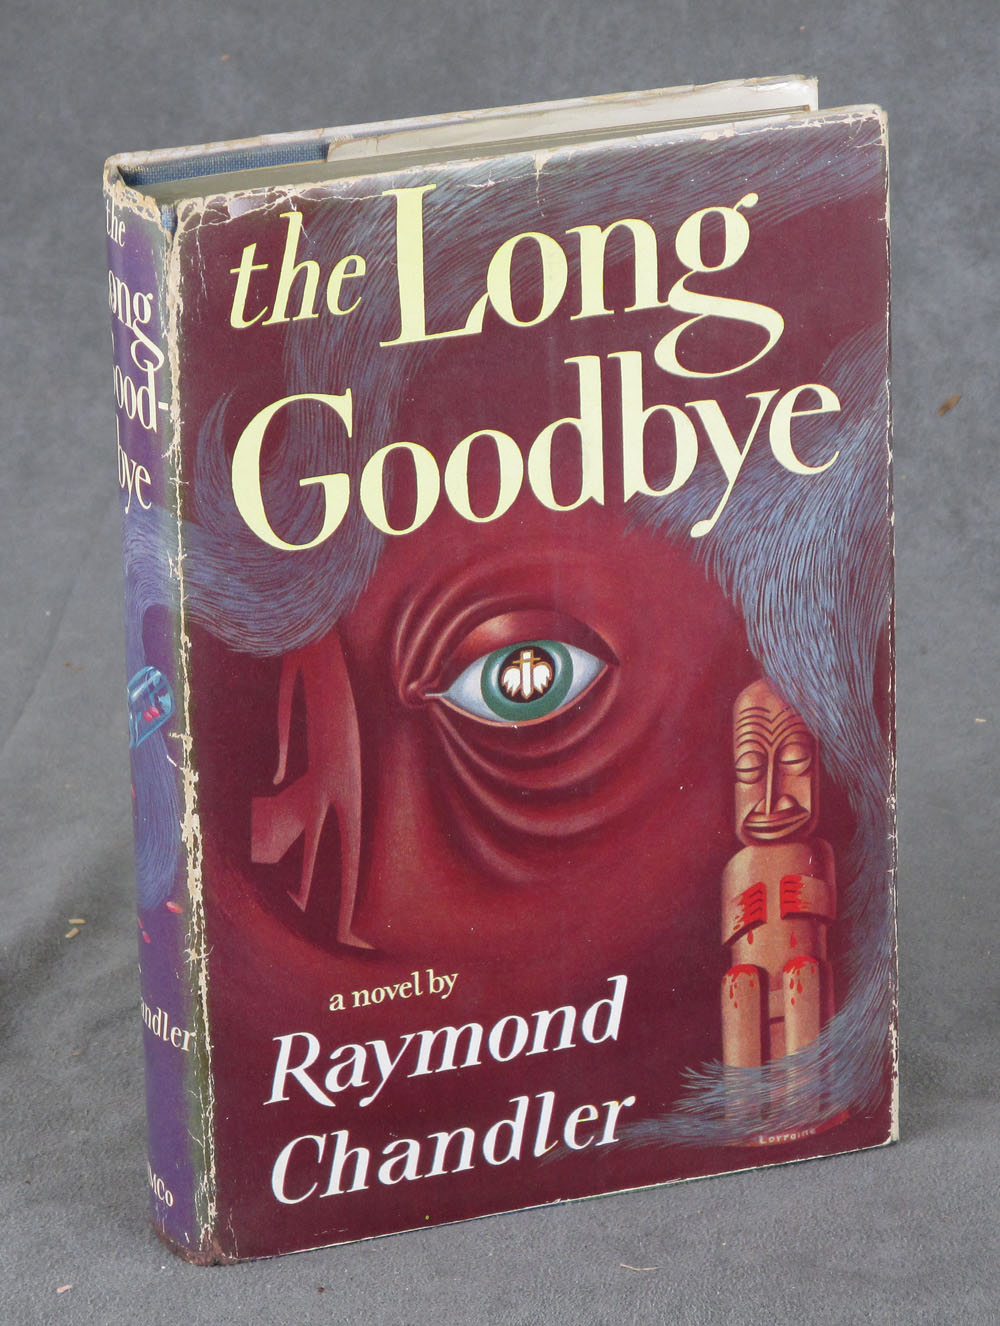 history of the detective novel from cicero to raymond chandler With his antithetical tableau of los angeles as a subterrane city both gritty and sublime, raymond chandler (1888-1959) reawakened the detective novel, taking it from.